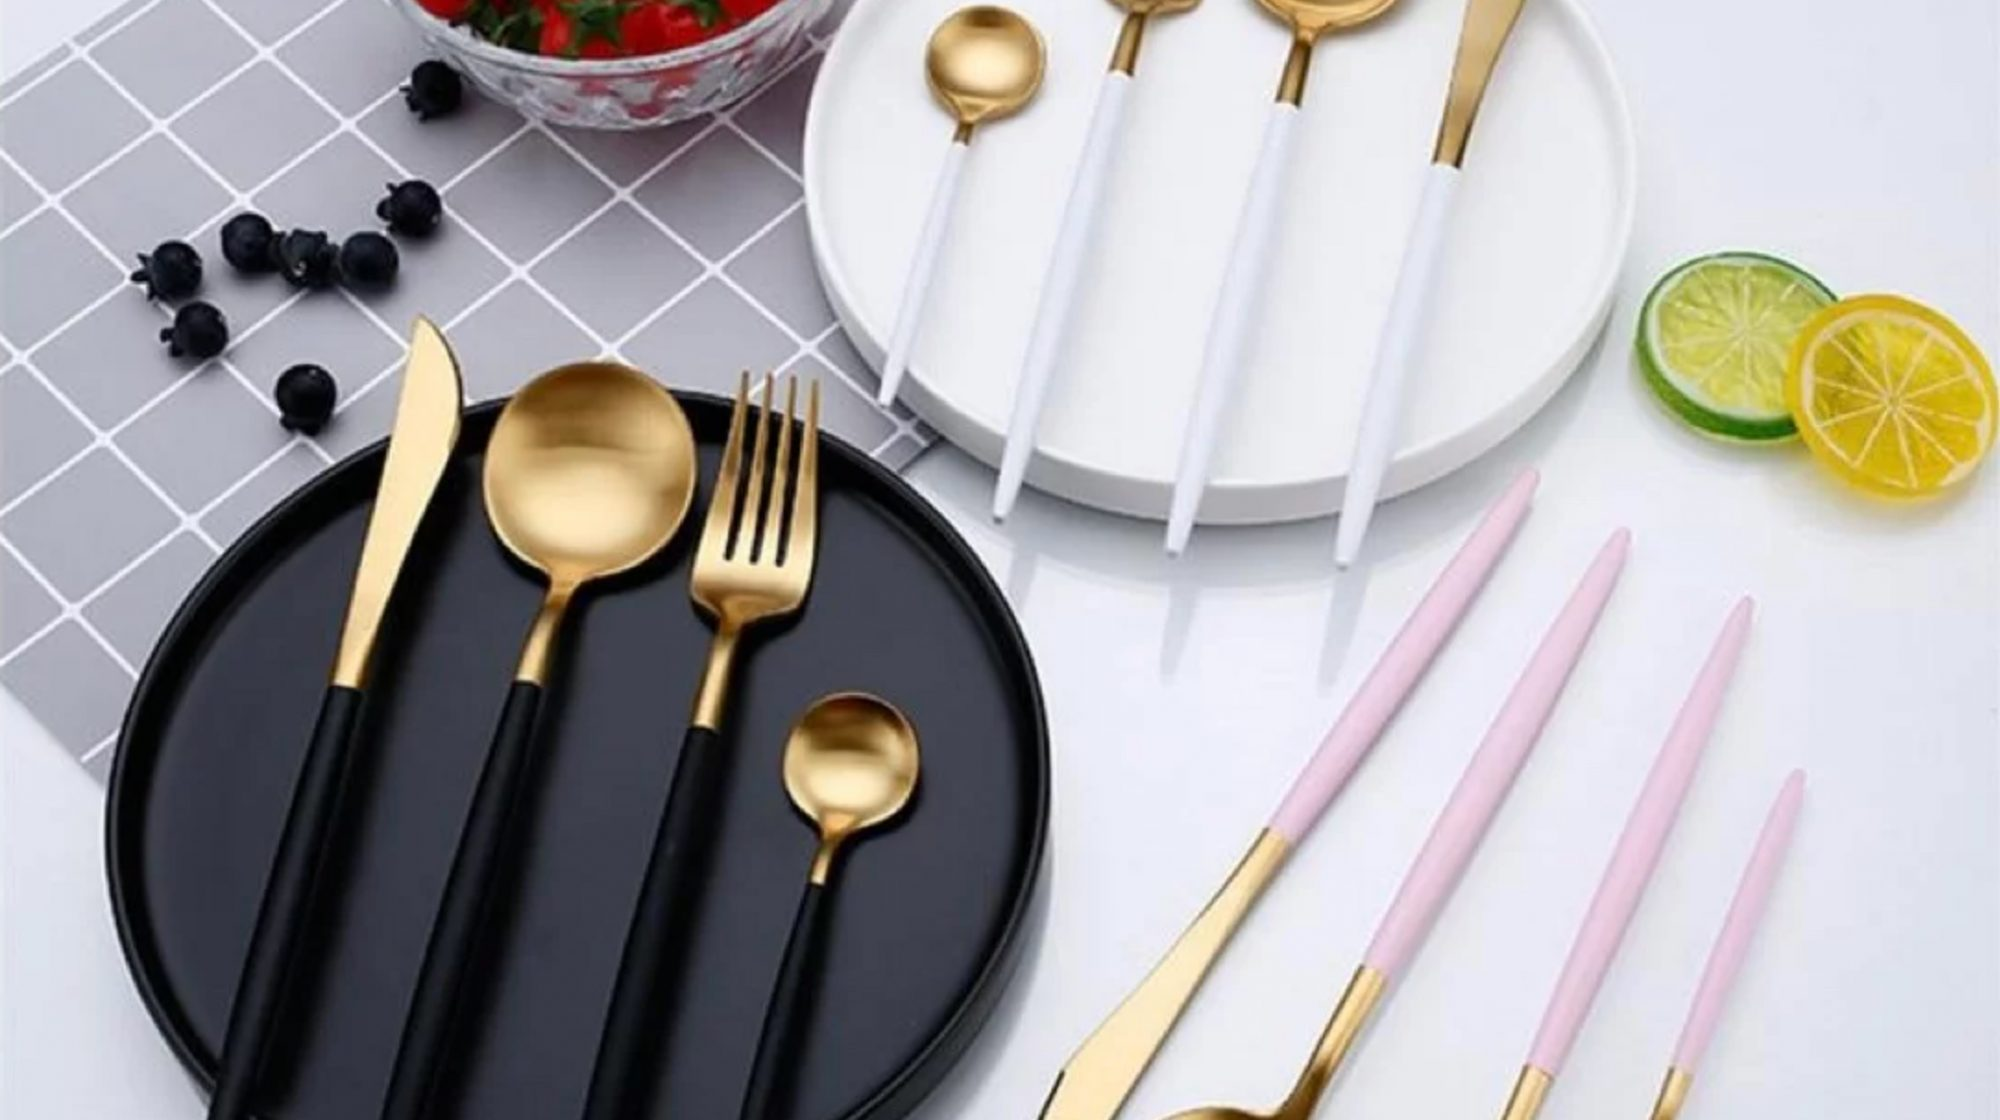 Gold and Matte White Luxury Four-Piece Flatware Set